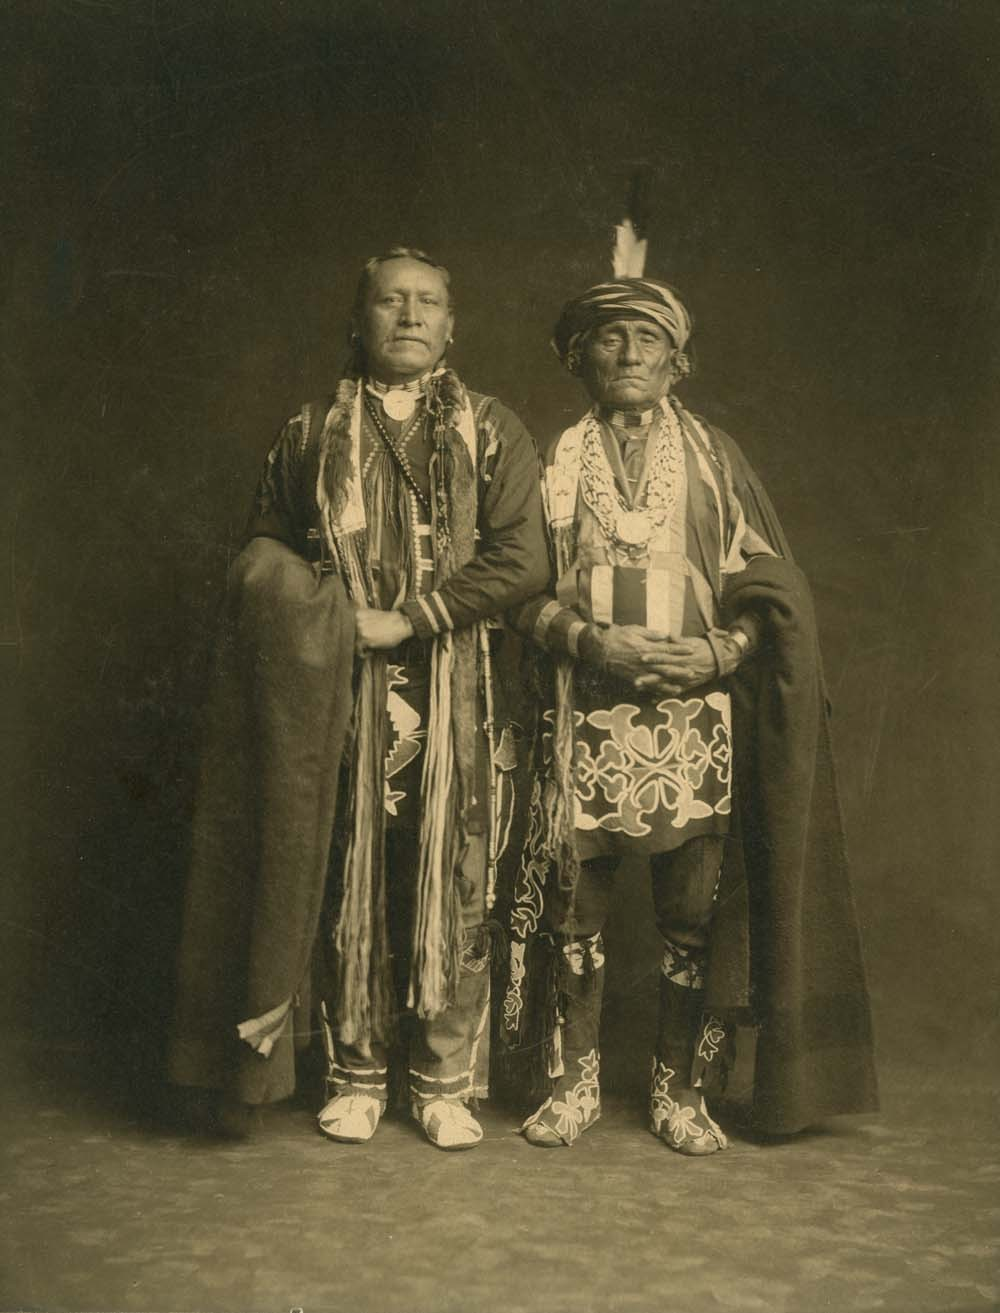 Chief Washungah and Wah-Moh-O-E-Ke